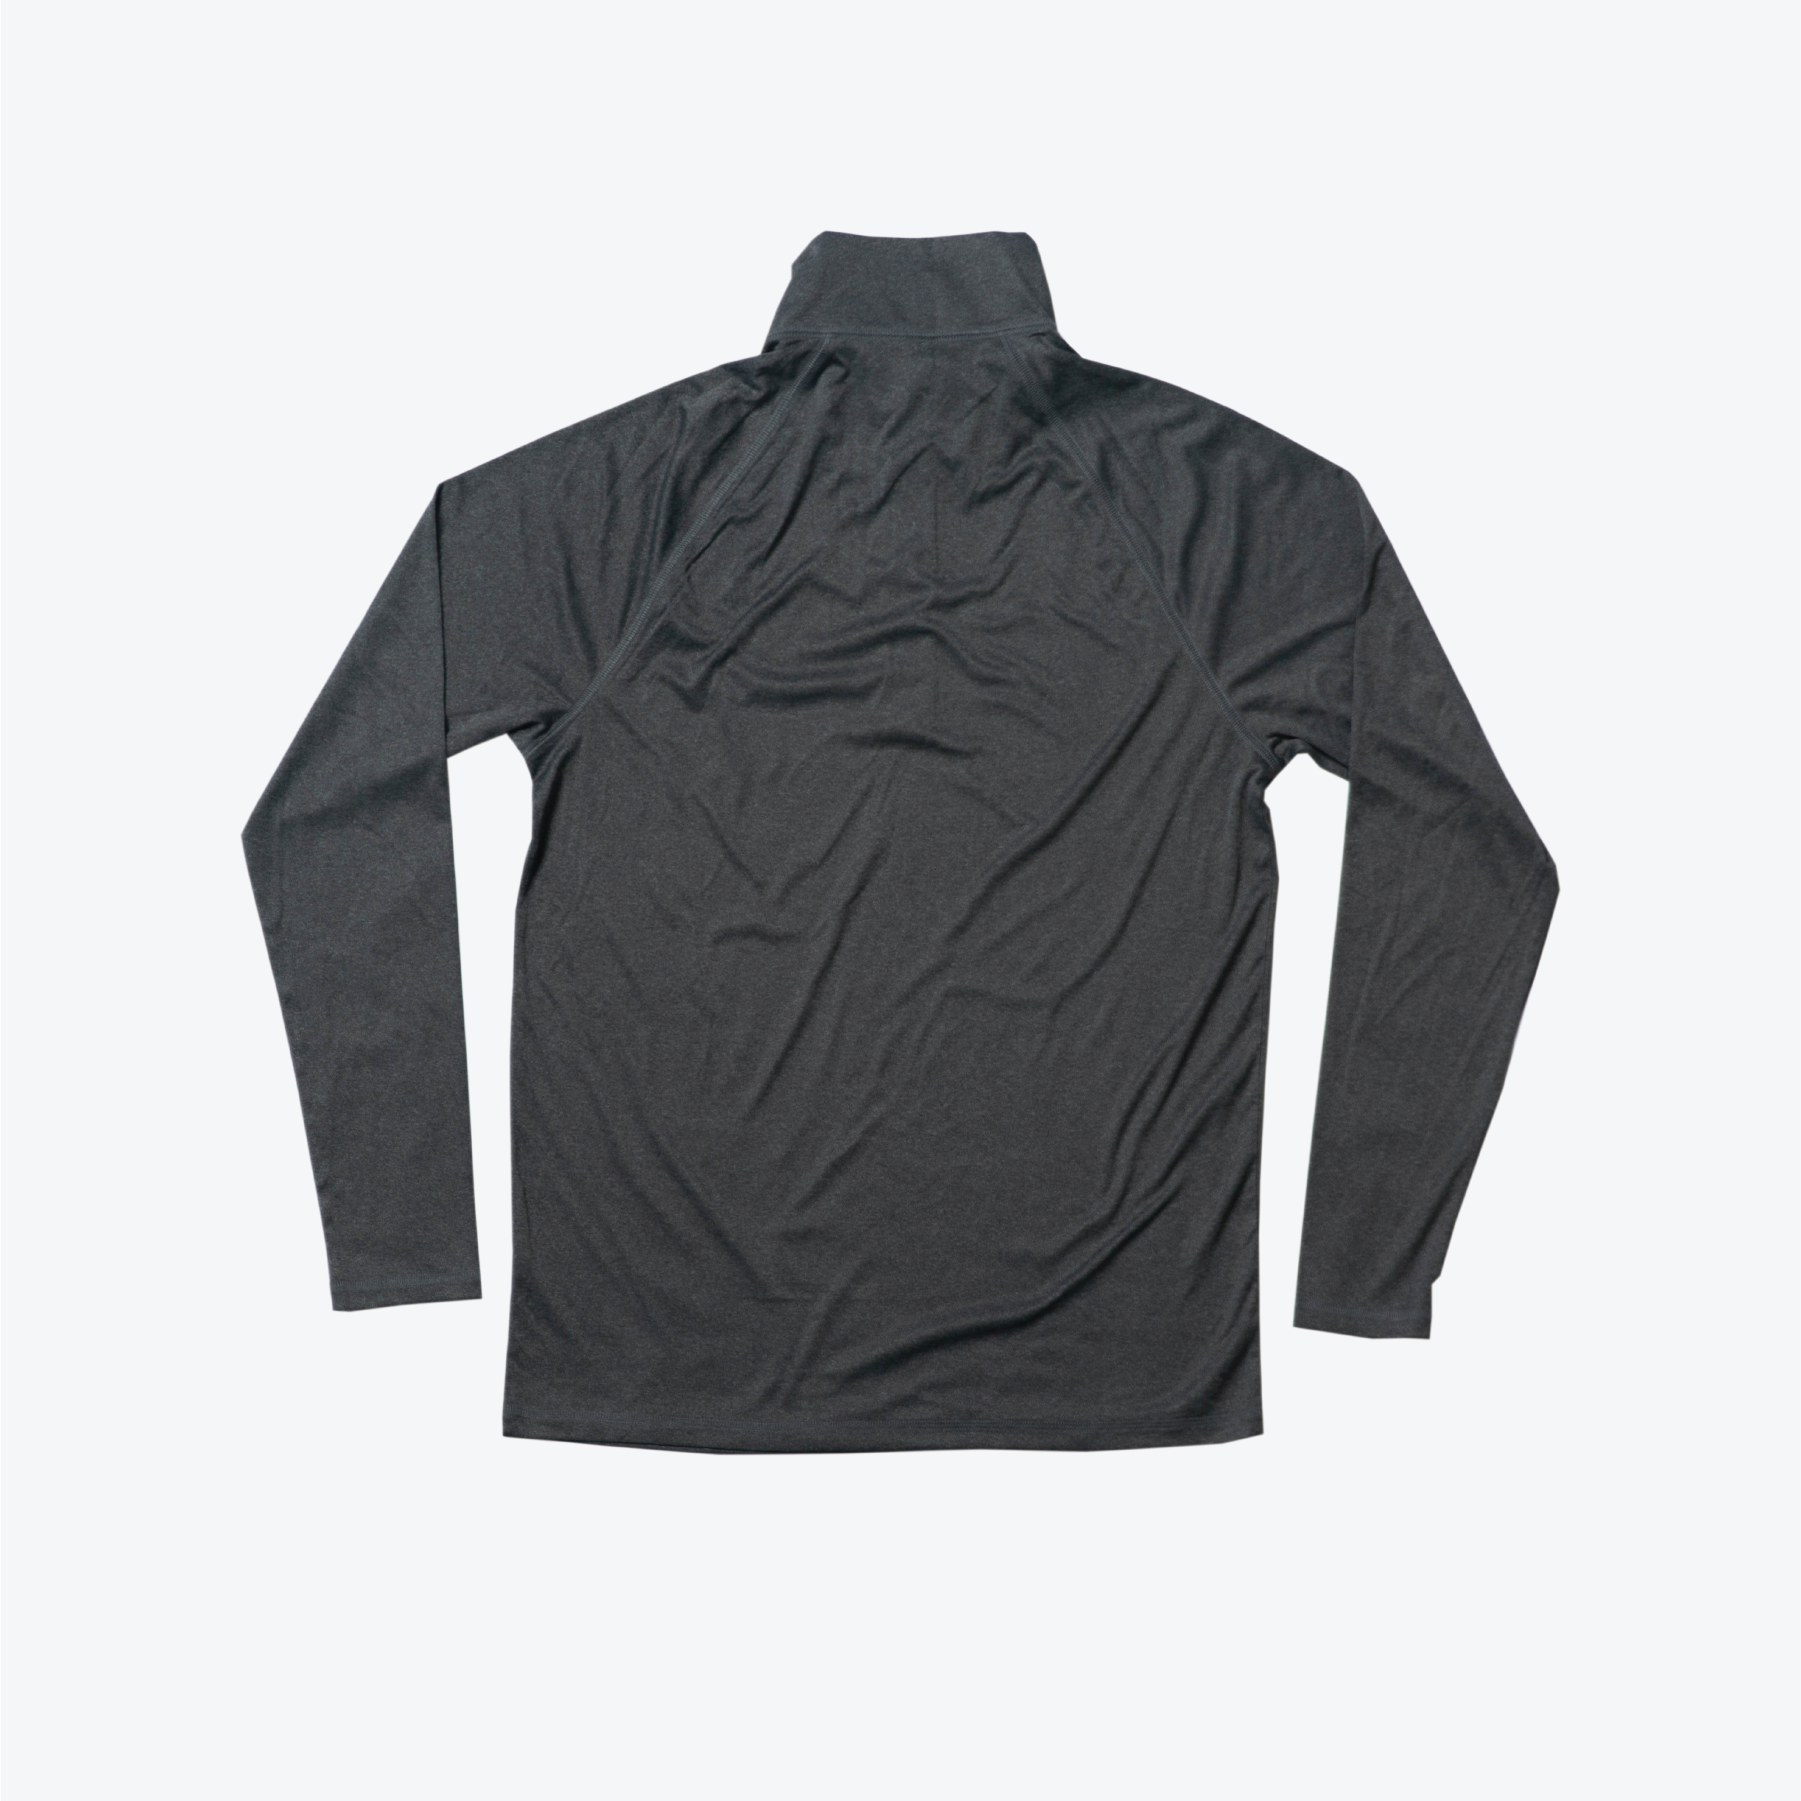 SMBS ATHLETIC-LONG SLEEVE SHIRT